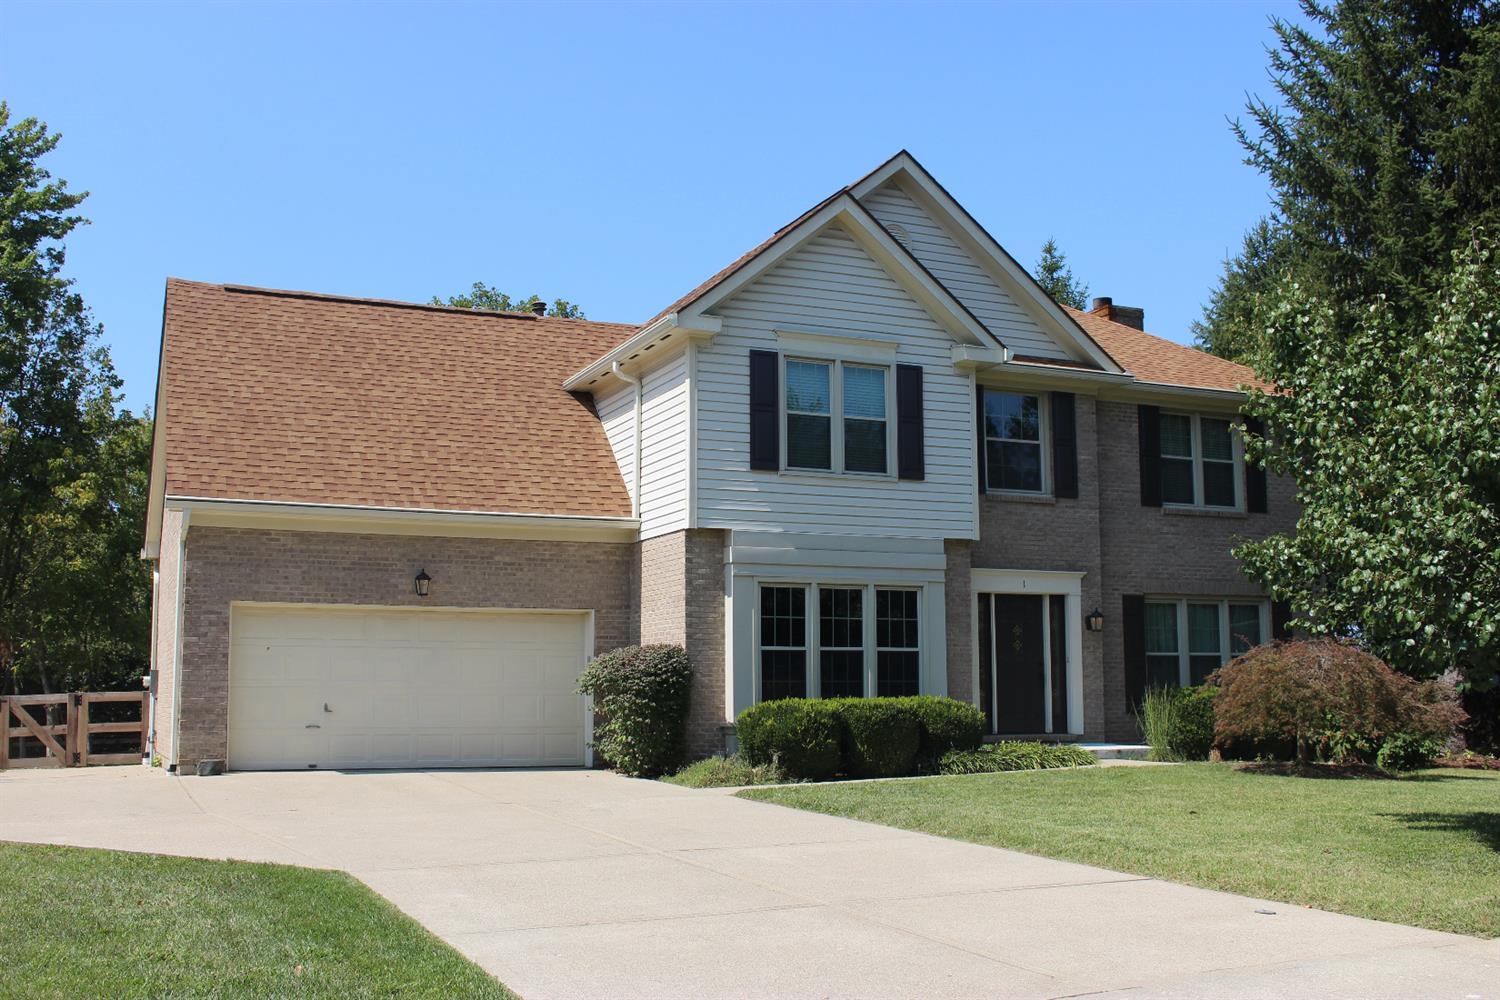 1 McCormick Trl Milford, OH